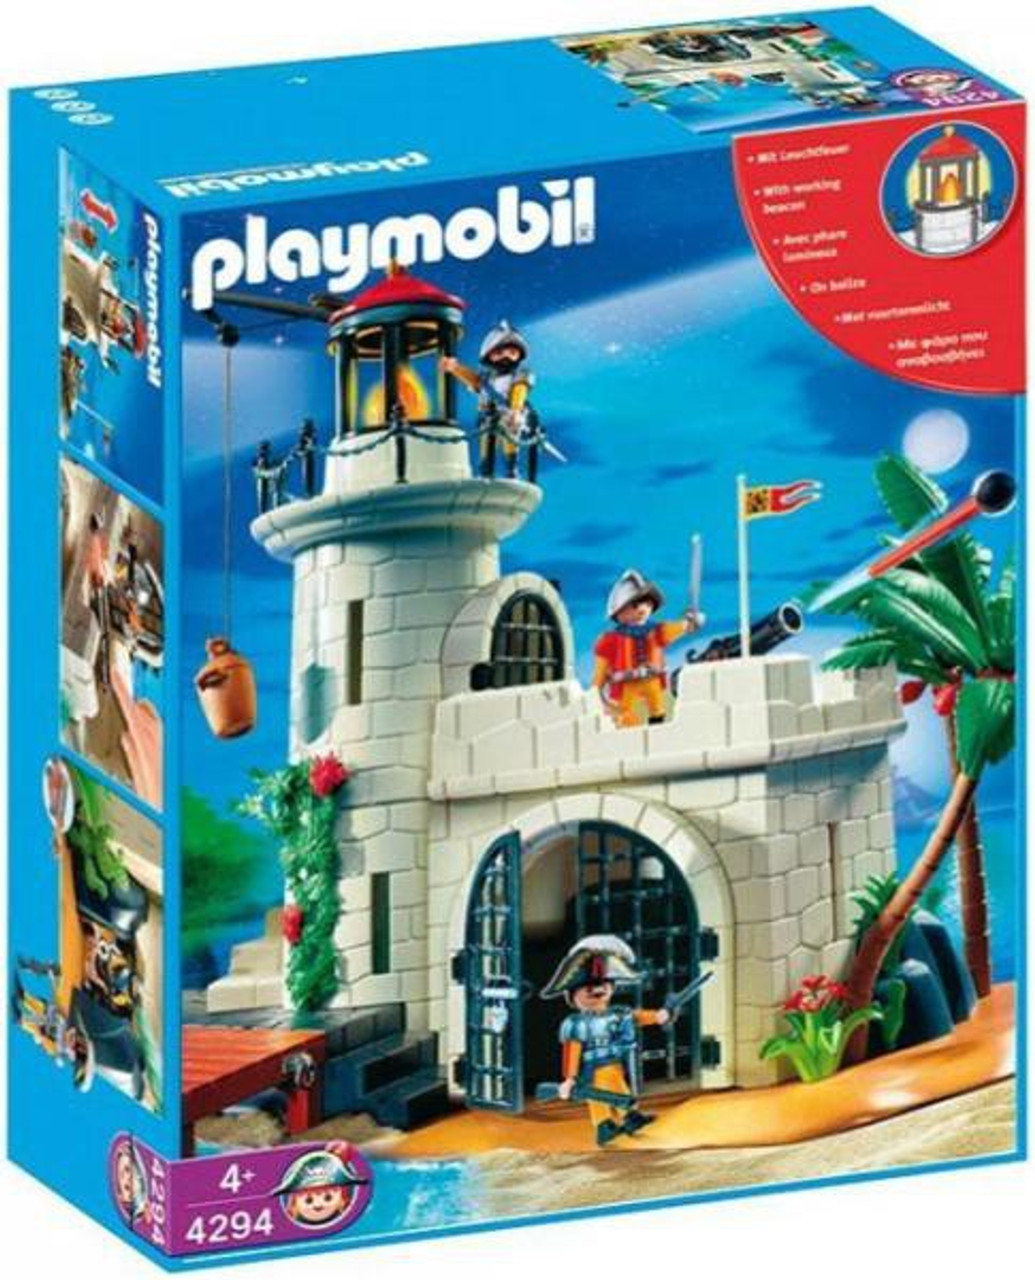 Playmobil Pirates Soldier Fortress with Lighthouse Set #4294